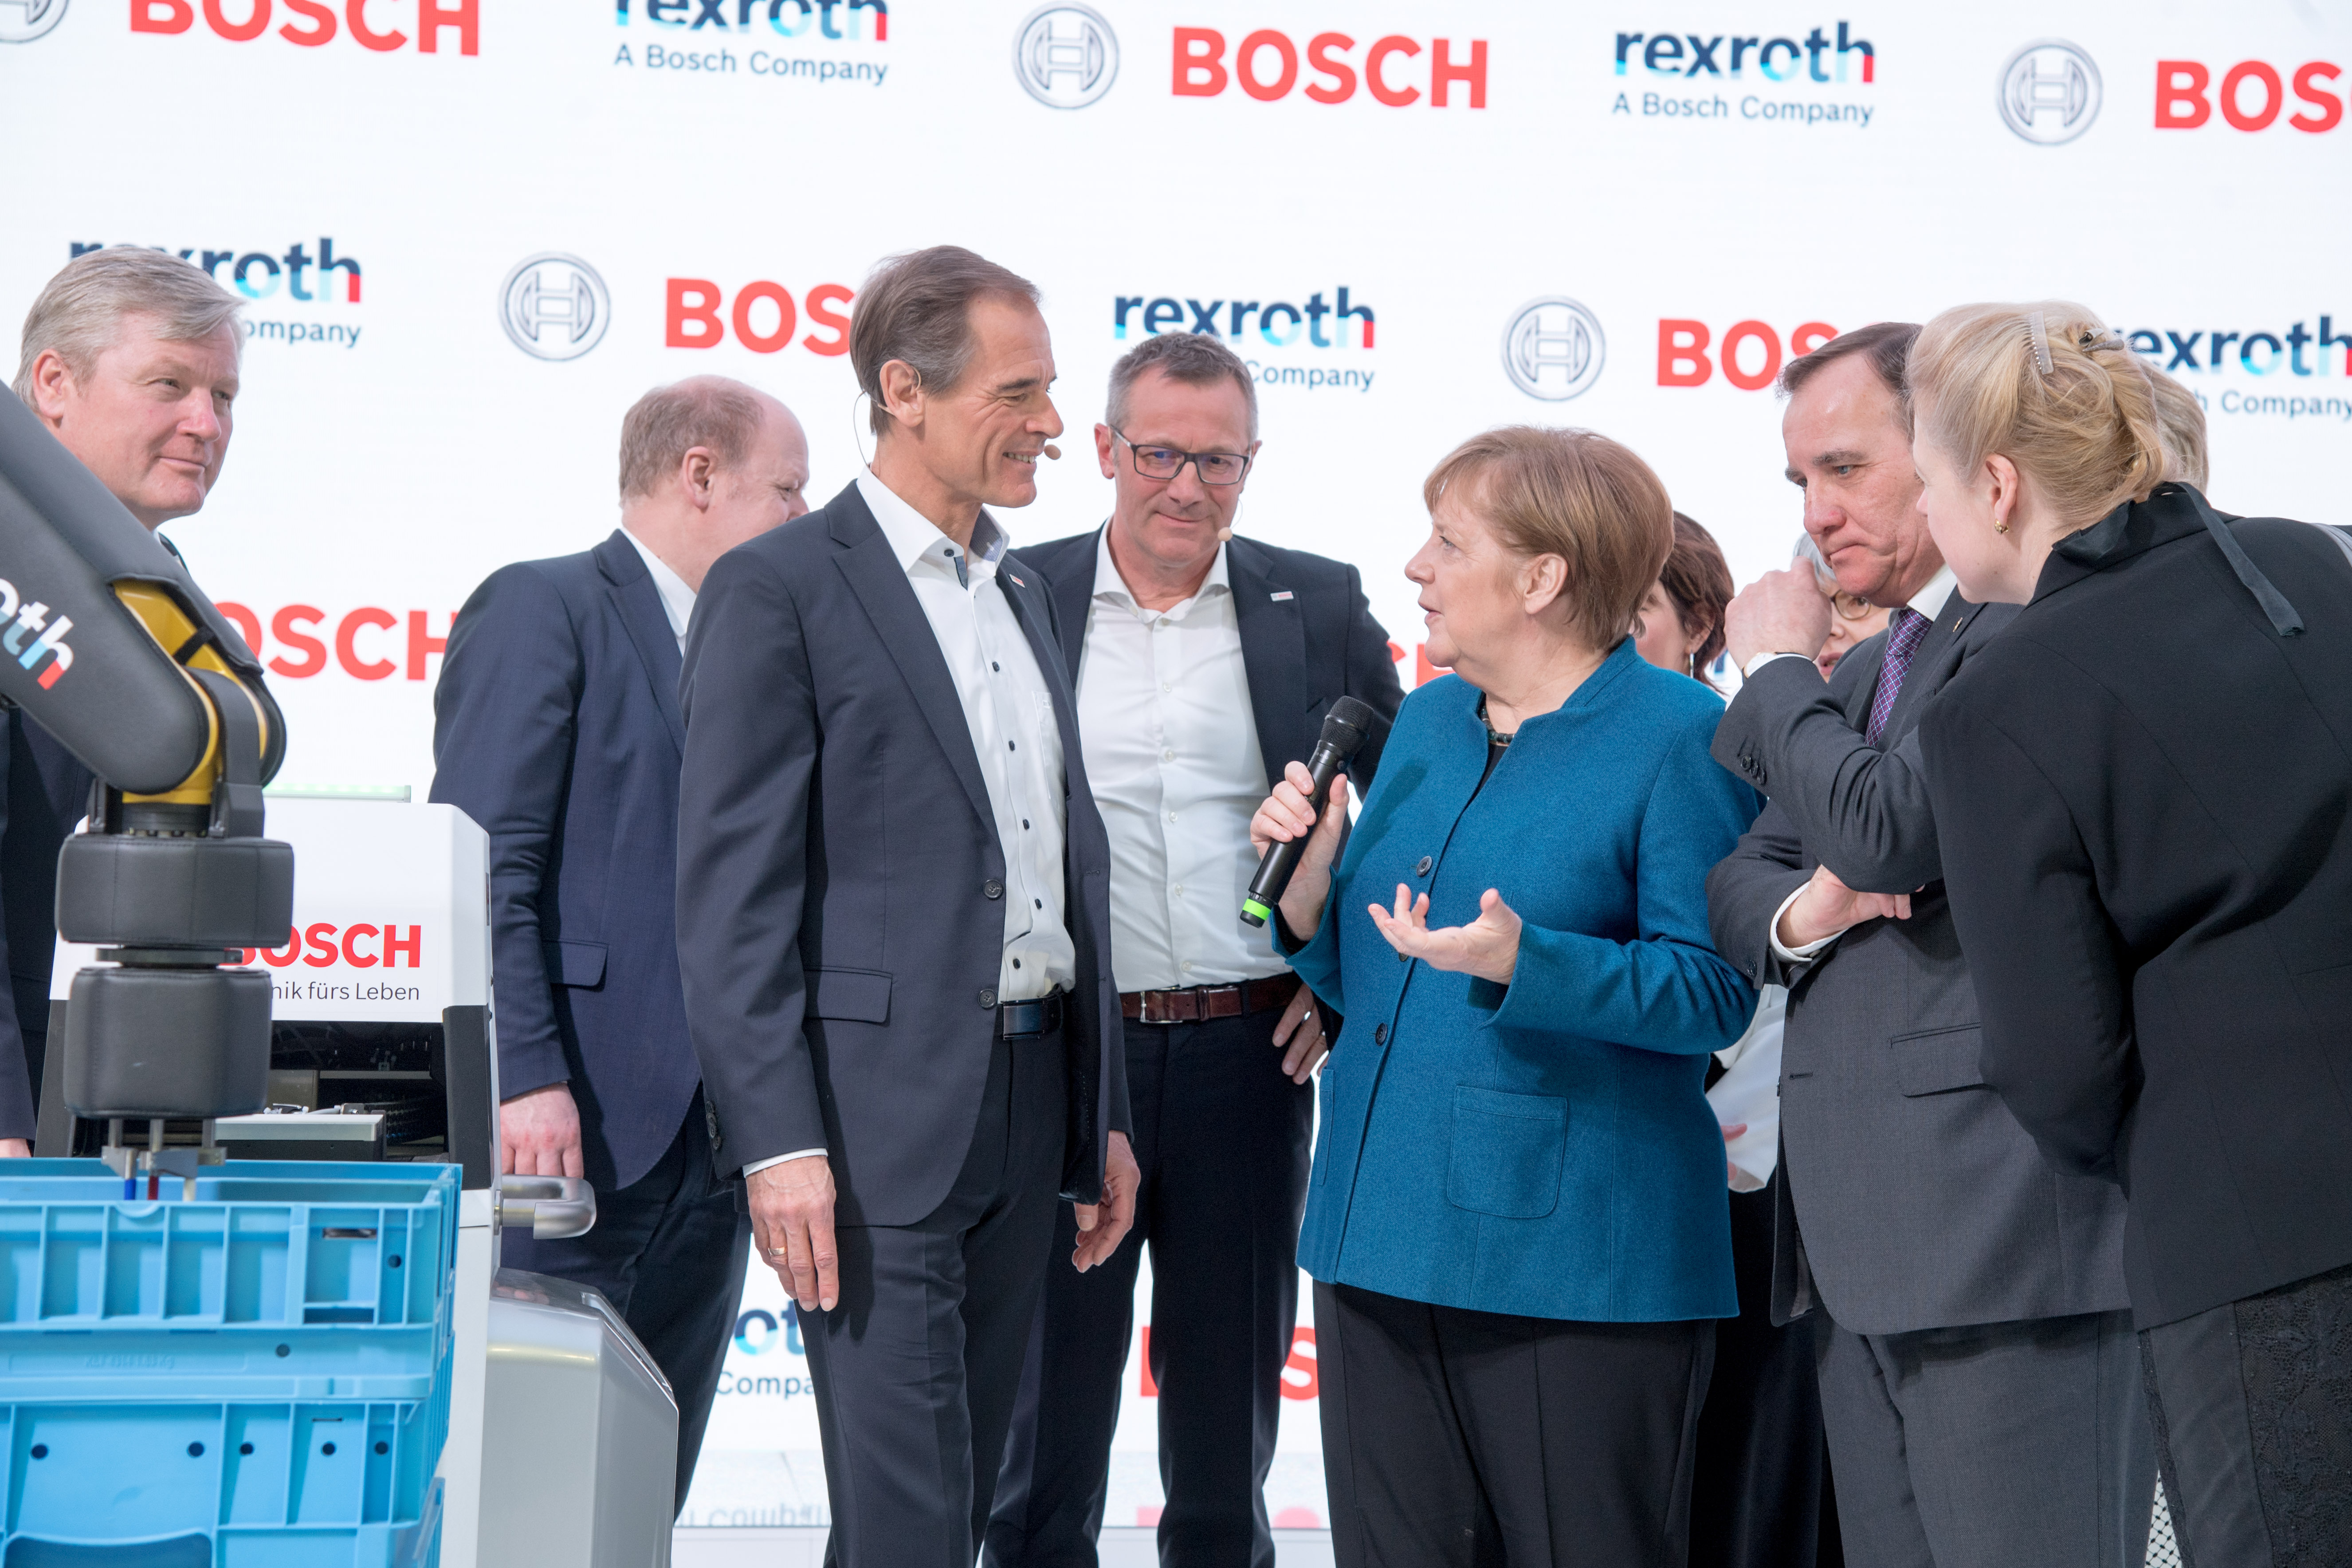 Angela Merkel visits the Bosch booth at the Hannover Messe. Volkmar Denner, chairman of the board of management of Robert Bosch GmbH, explains the factory of the future